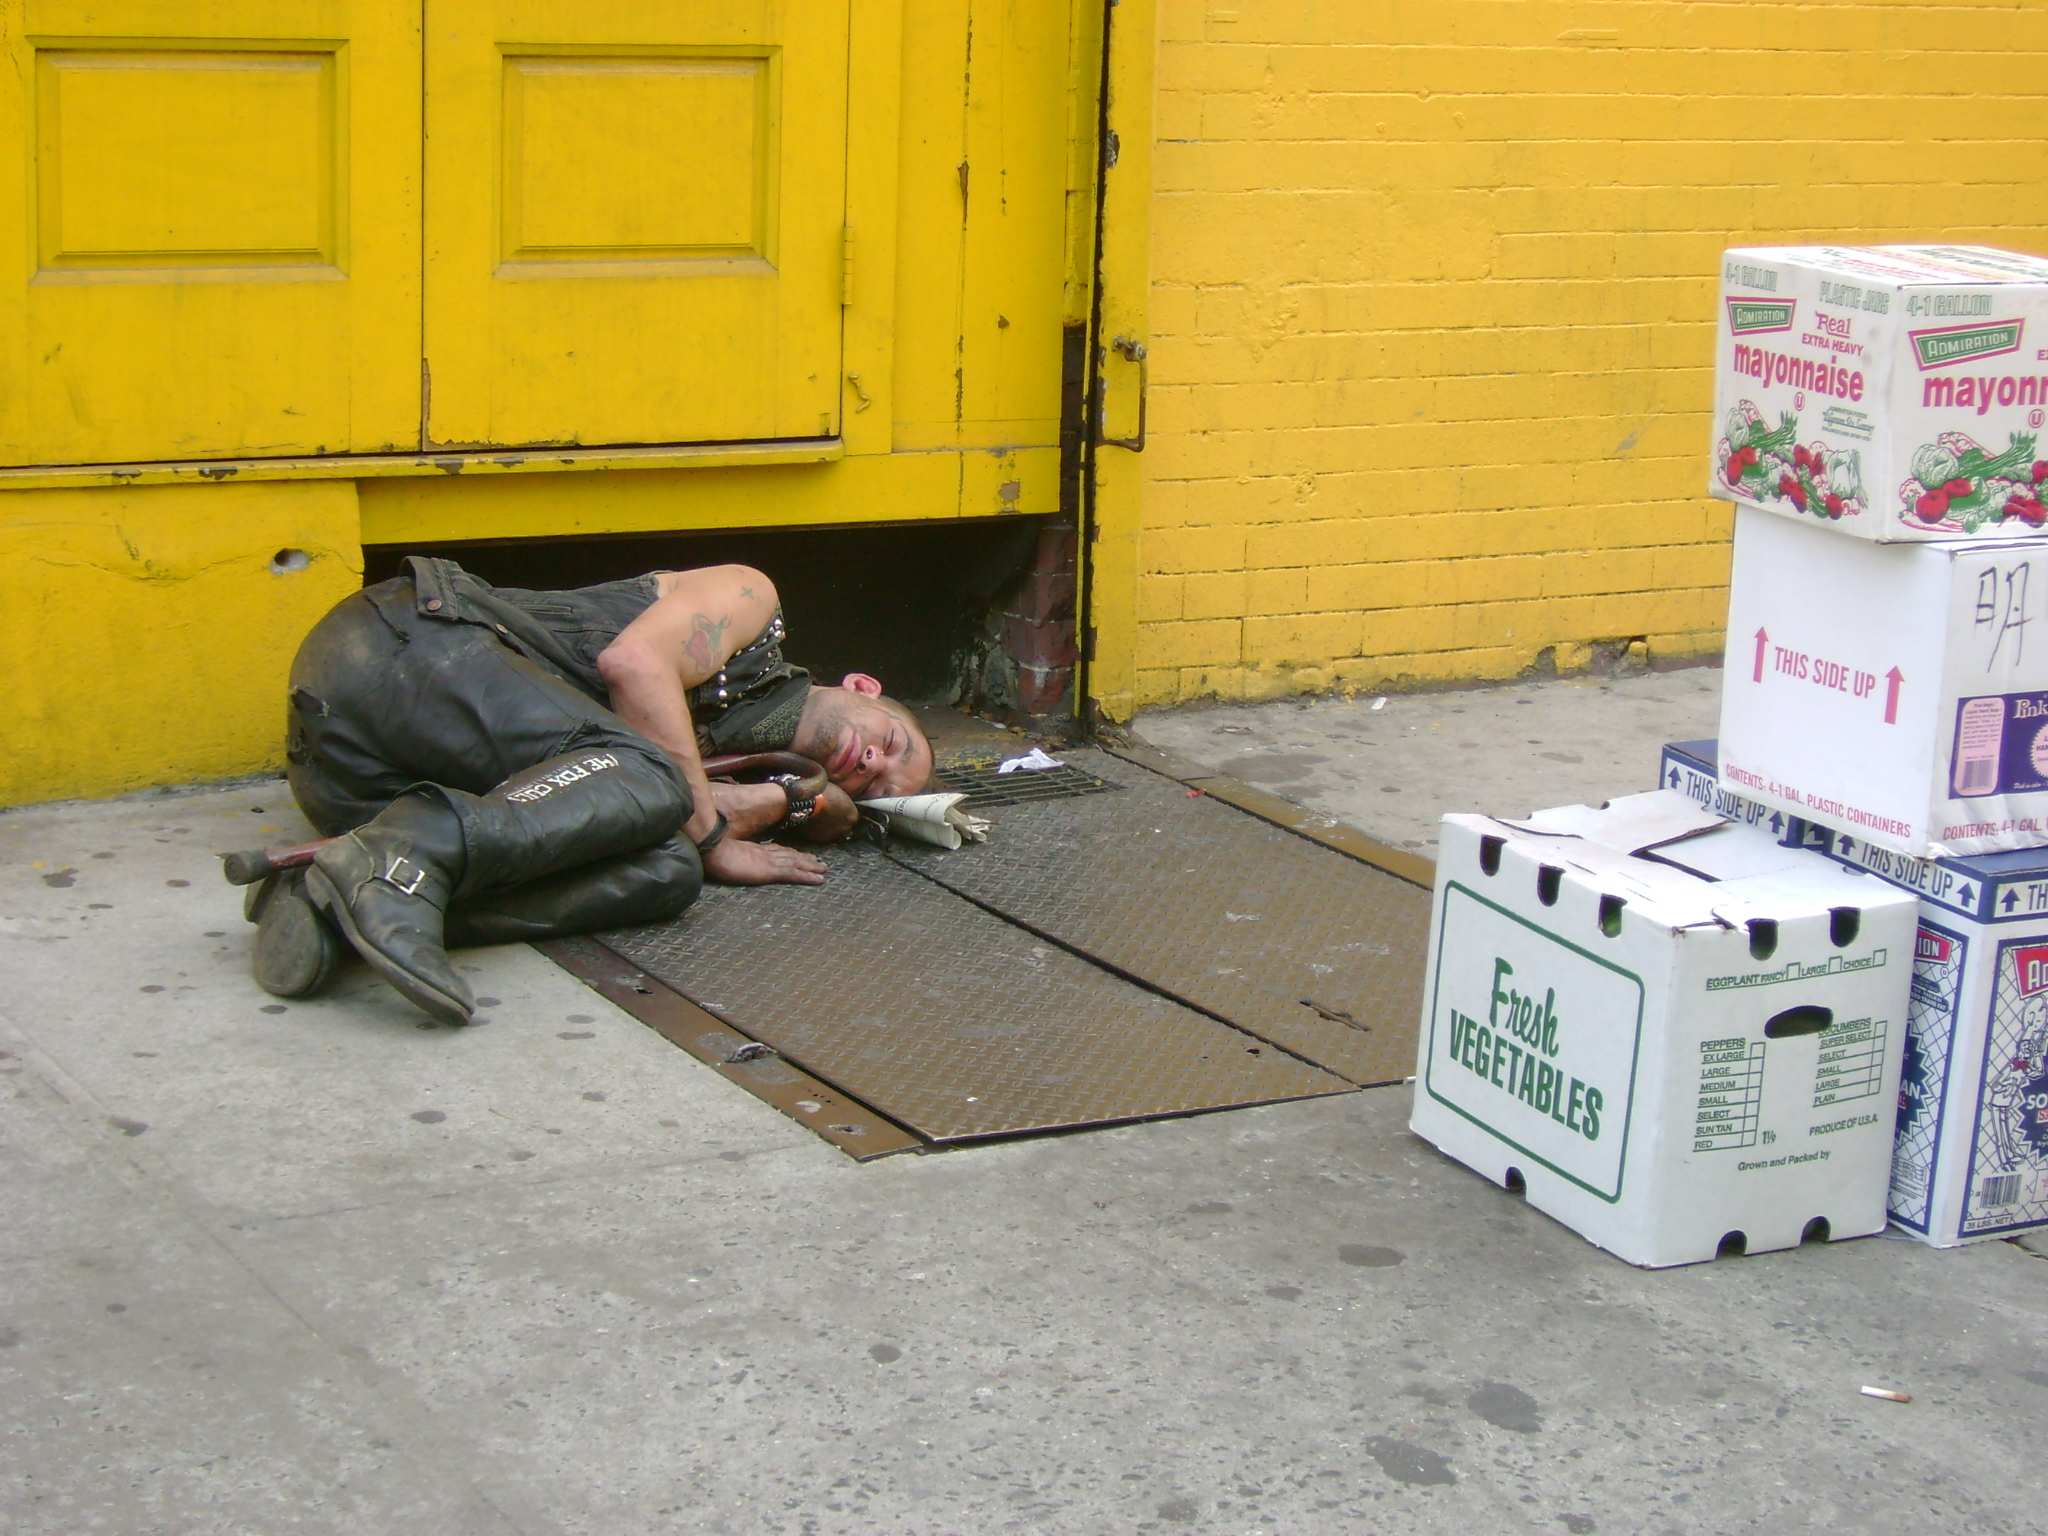 Homeless punk asleep on street